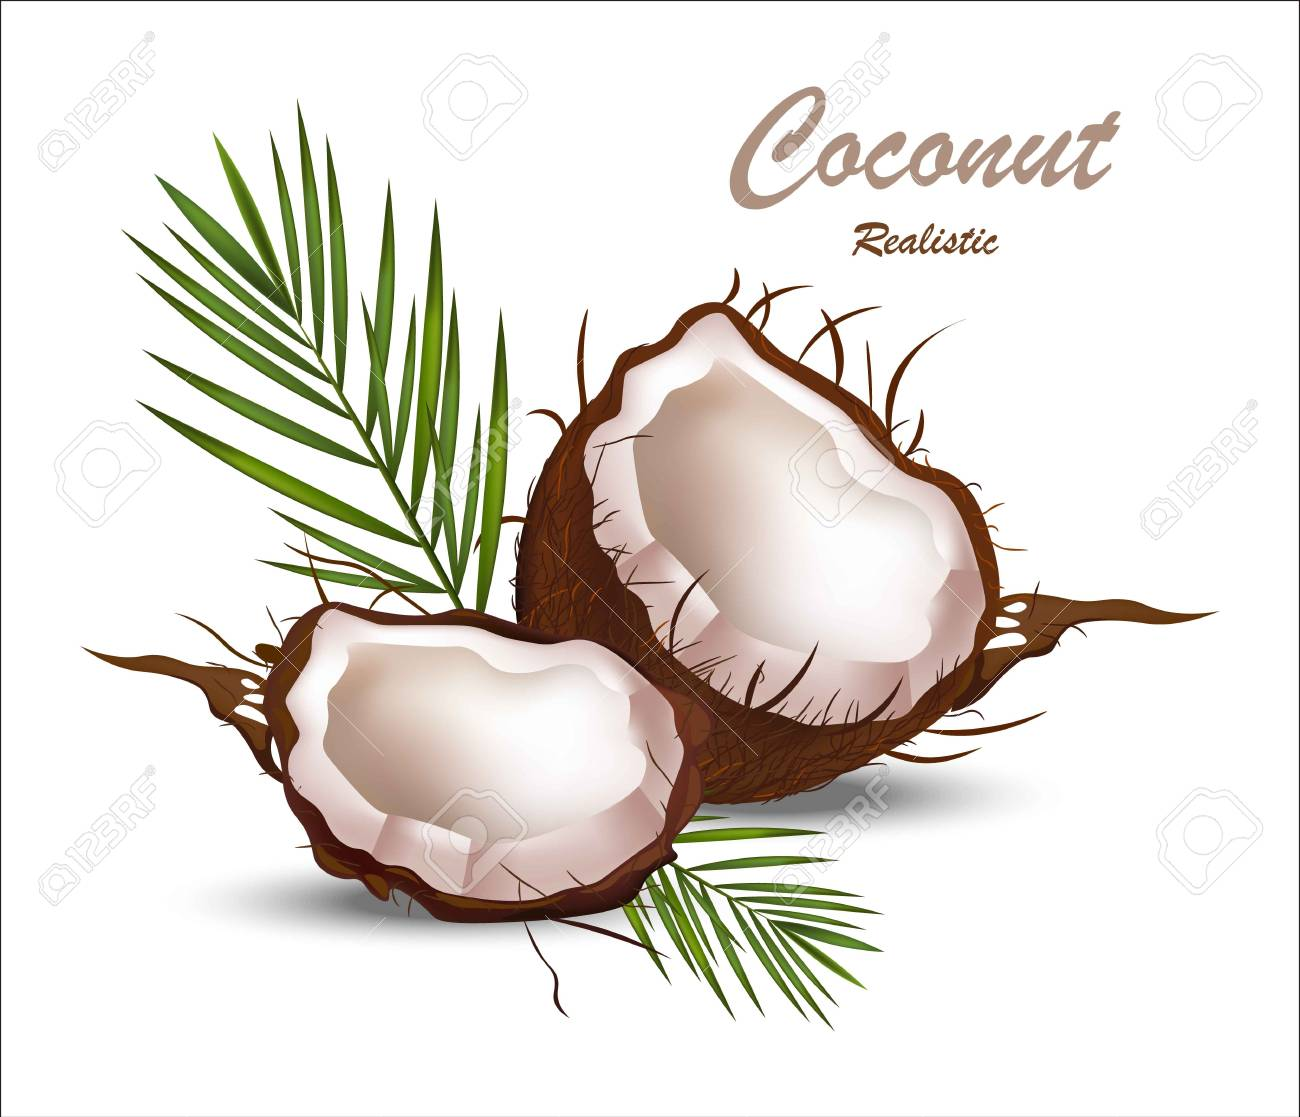 Whole Coconut Clipart 55029